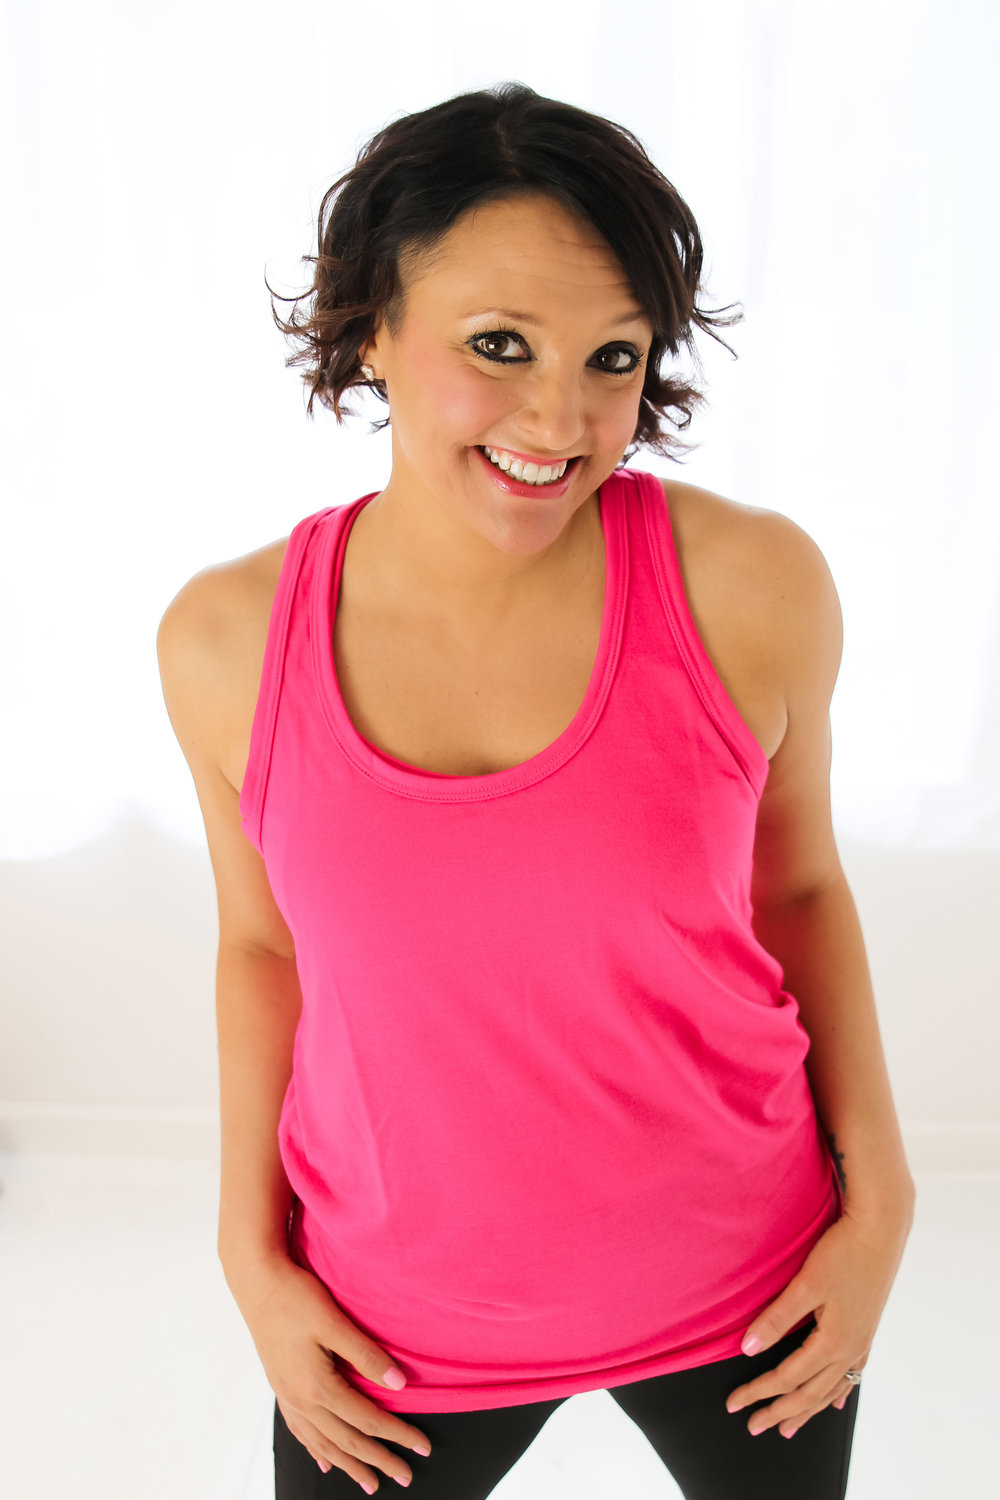 Kim Barnard, owner - Kim Barnard hails from Bloomington, IL. Having over 30 years of dance experience behind her, Kim received her training from two incredible studios in Bloomington/Normal and in the Dance/Musical Theatre department of Illinois State University with focus on ballet, jazz and contemporary extensively. She has also trained with such notable choreographers as Spencer Liff, Dorianna Sanchez, Harrison McEldowney, Jeremy Plummer and Laura Dunlop. Her professional credits include: Dancing on the 66th Annual Tony Awards, dancing for the Chicago Bulls basketball team, singing on The Spirit of Chicago, dancing at Six Flags St. Louis and many other incredible experiences! Kim was also a dancer for Royal Caribbean Cruise Lines for many years, dance captain for Broadway style shows and has been teaching dance for the past 4 years. Kim has been a judge for NexStar Talent Competition for 6 years and is SUPER excited to open All About Dance - Bloomington, IL!!!